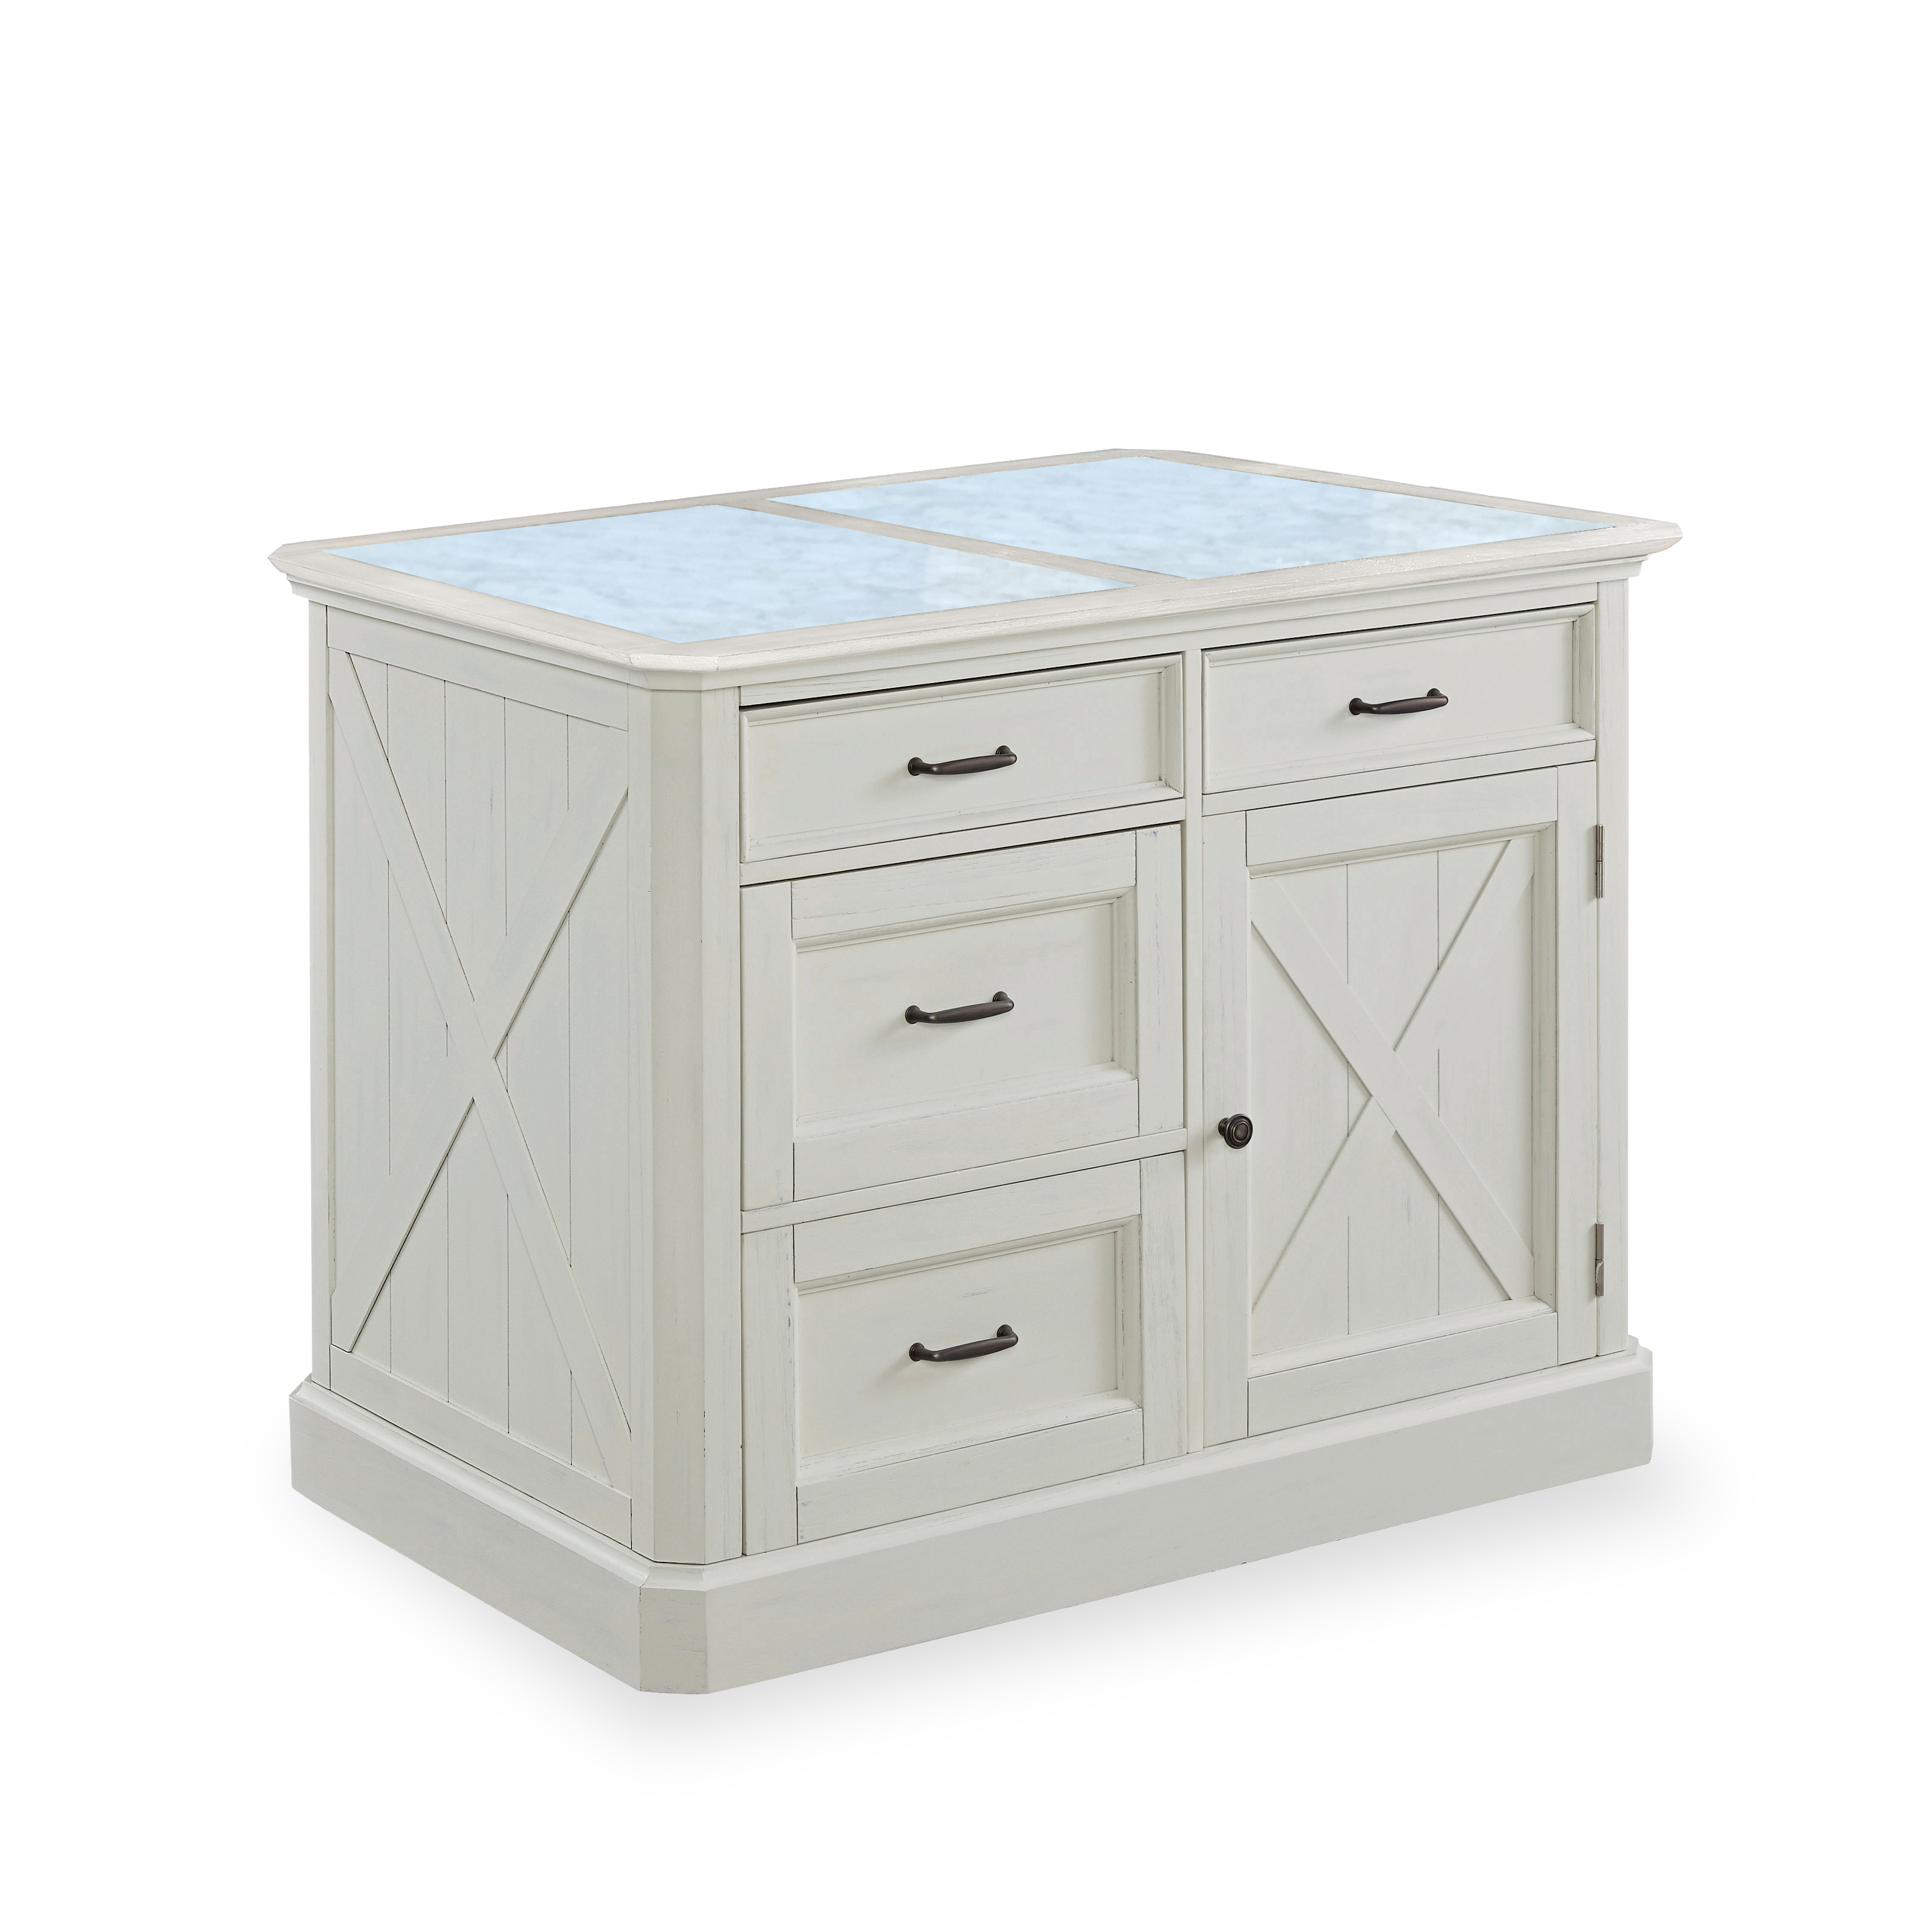 Bay Lodge Kitchen Island by homestyles at Value City Furniture